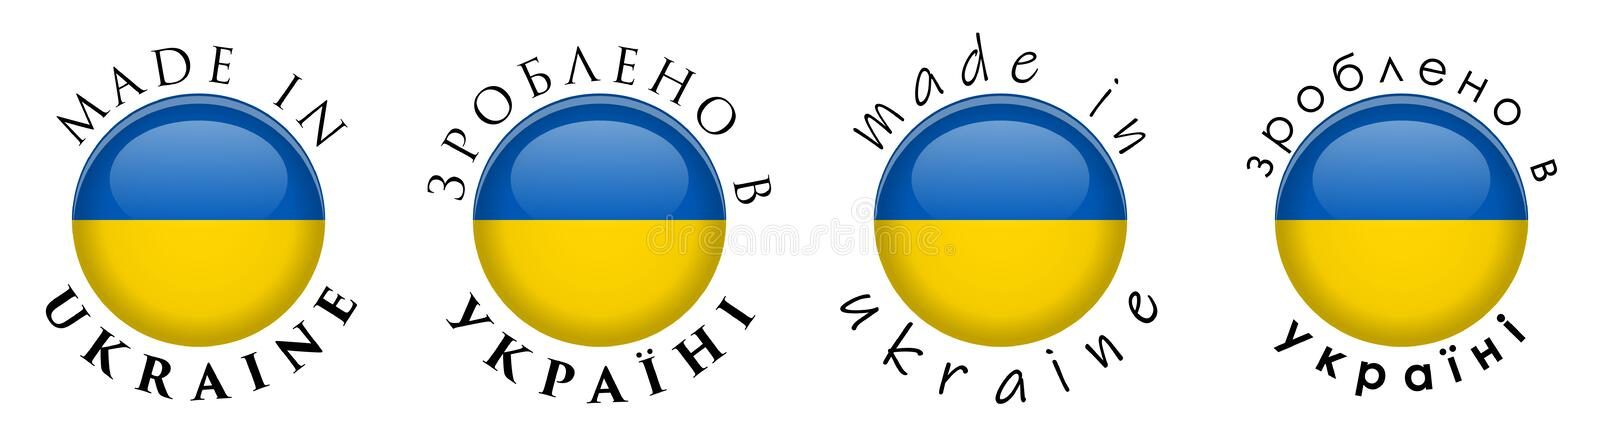 Simple Made in Ukraine / translation in Cyrillic script 3D button sign. Text around circle with Ukrainian flag. Decent and casual stock illustration